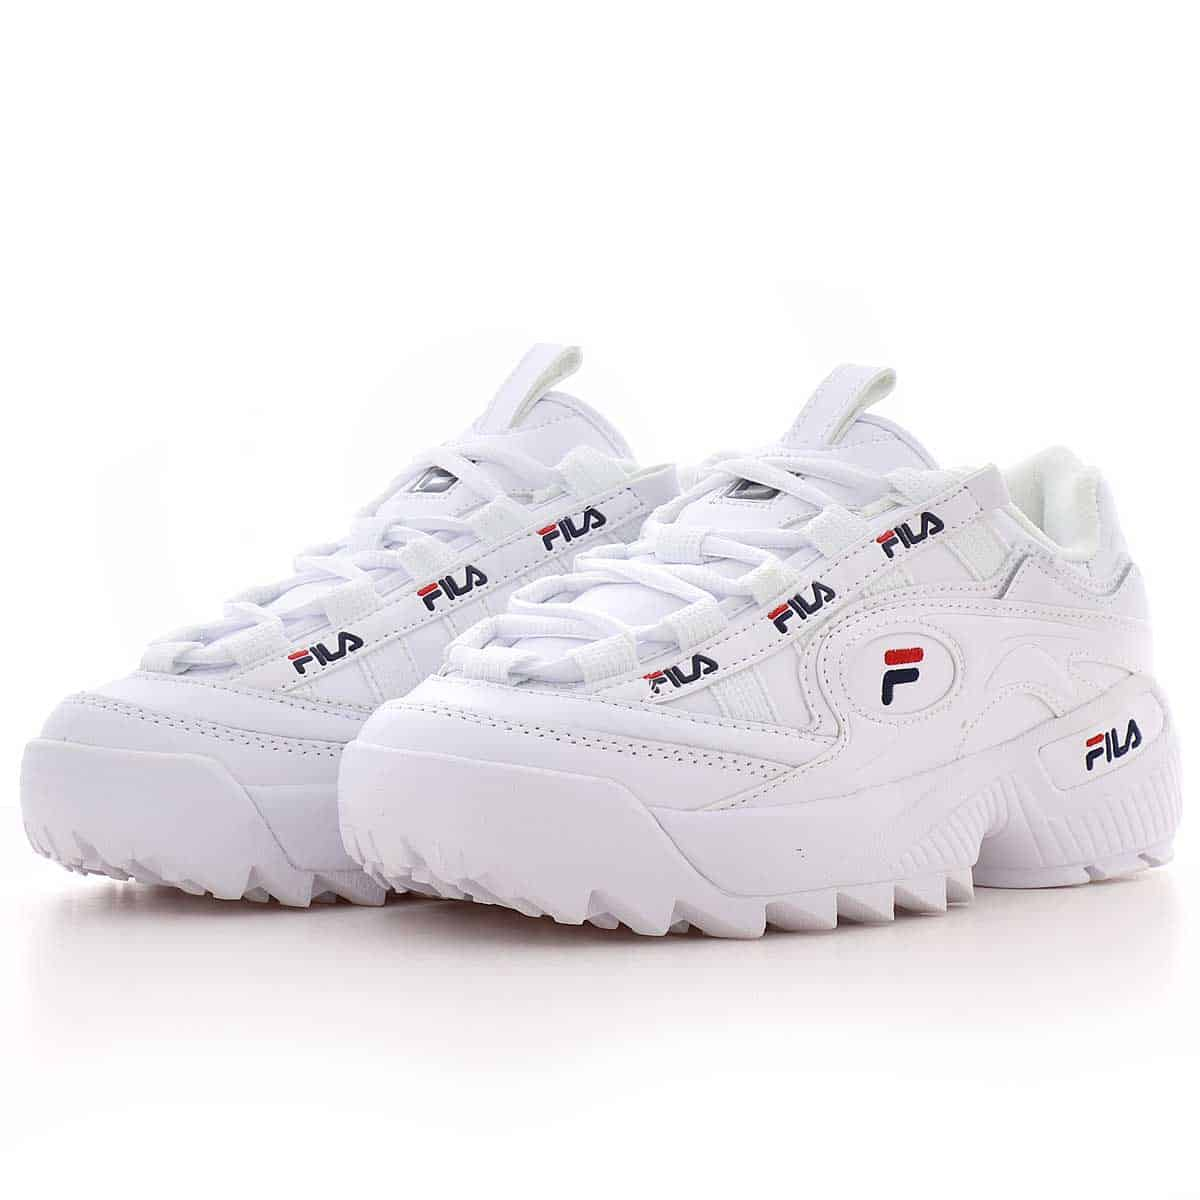 Fila D FORMATION White